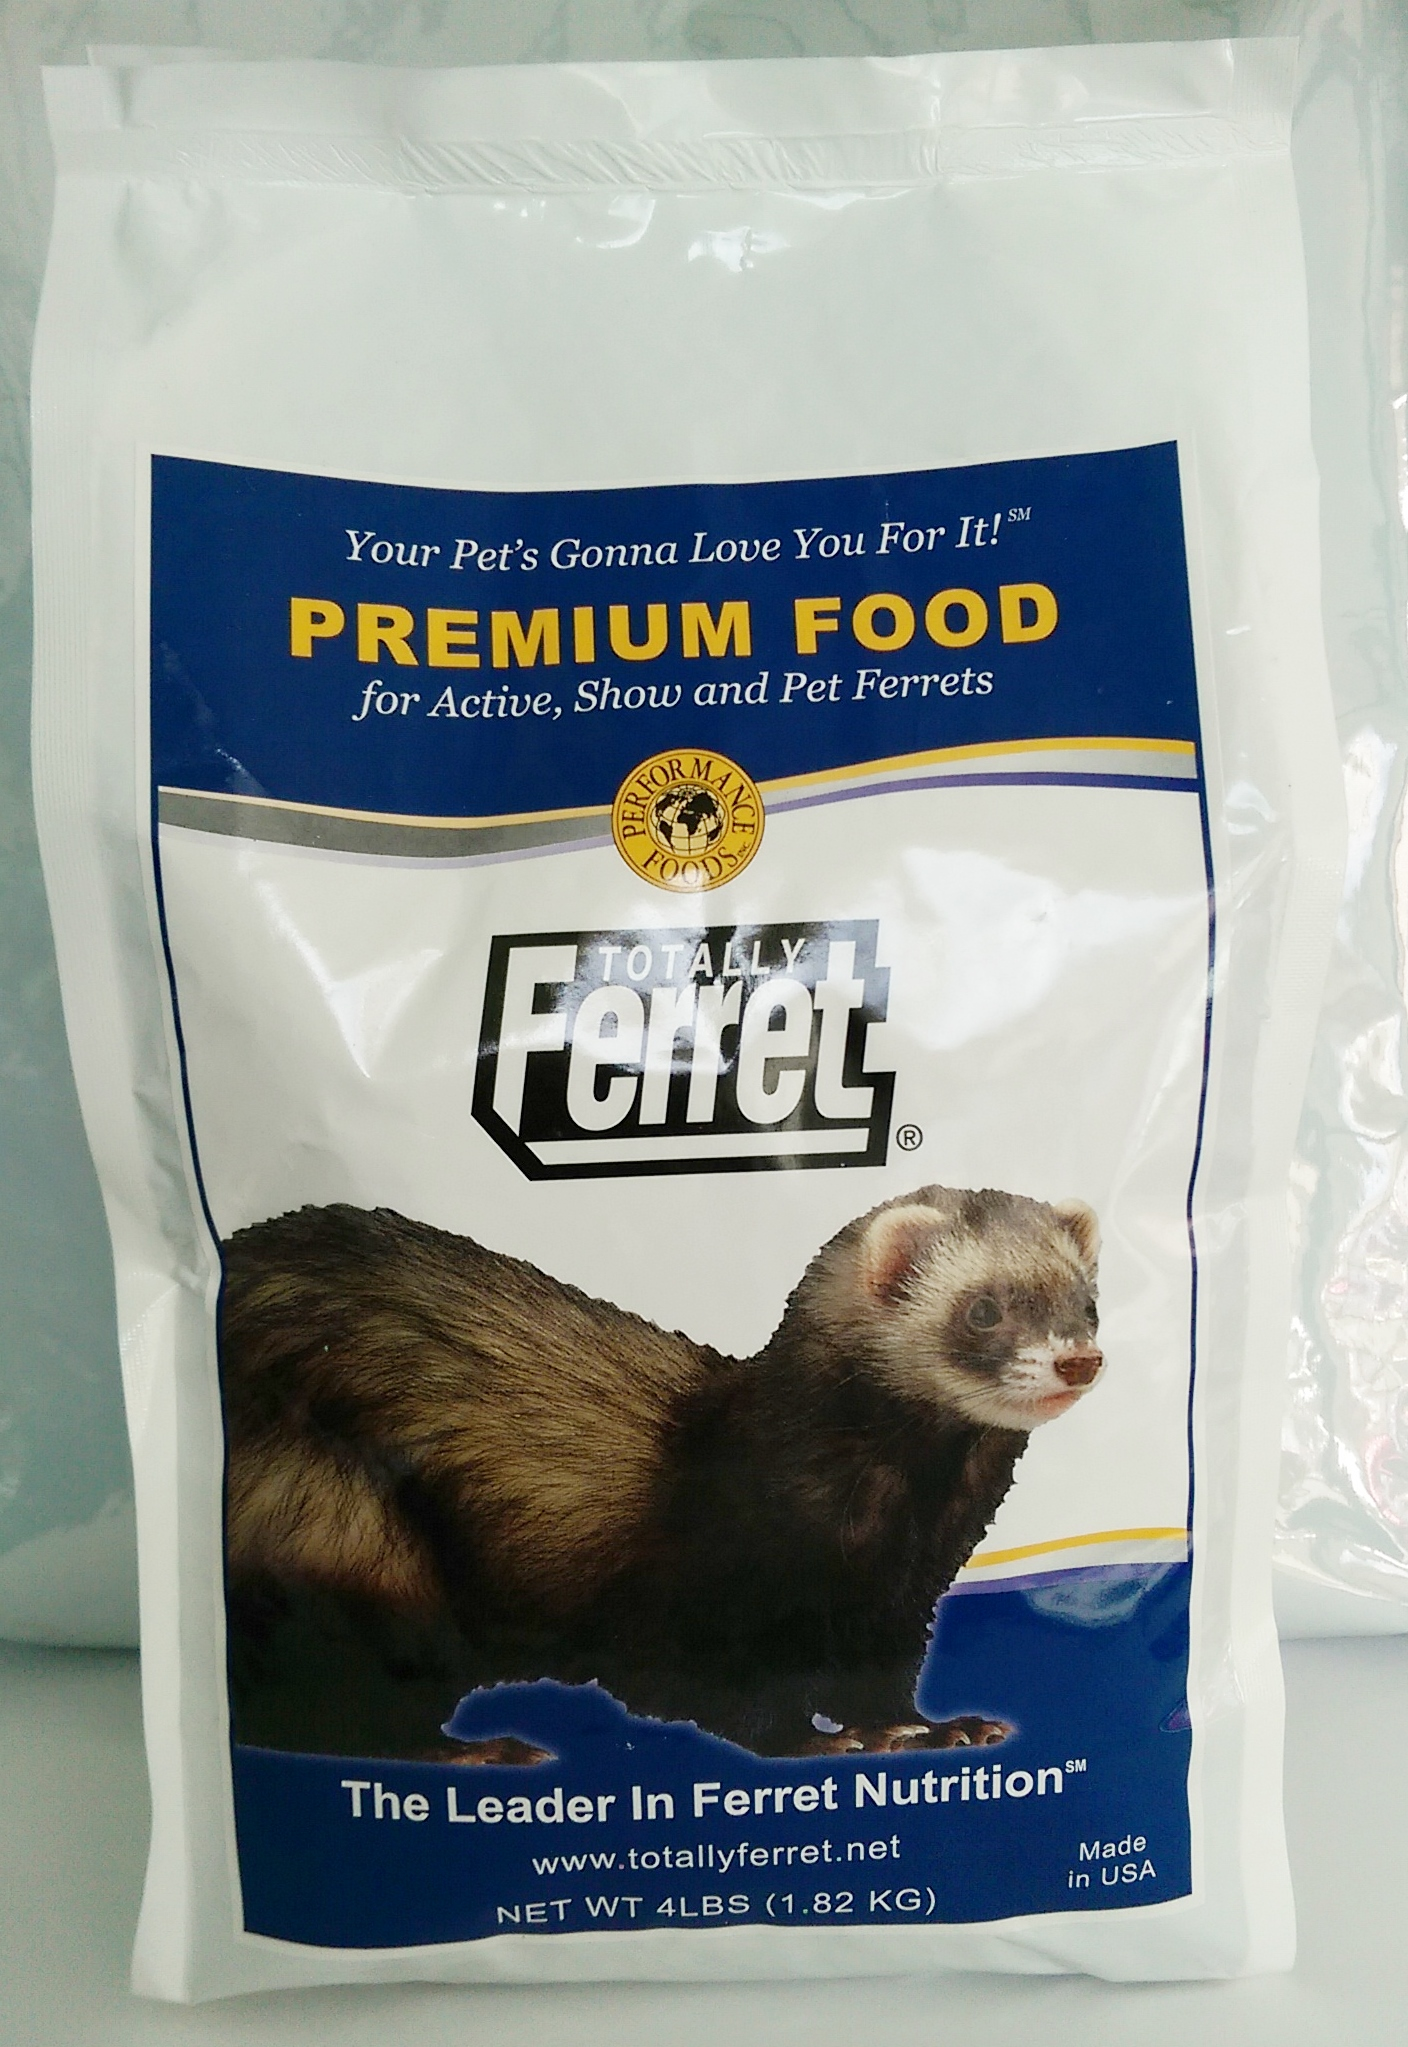 Totally Ferret for Active Pet and Show Ferrets